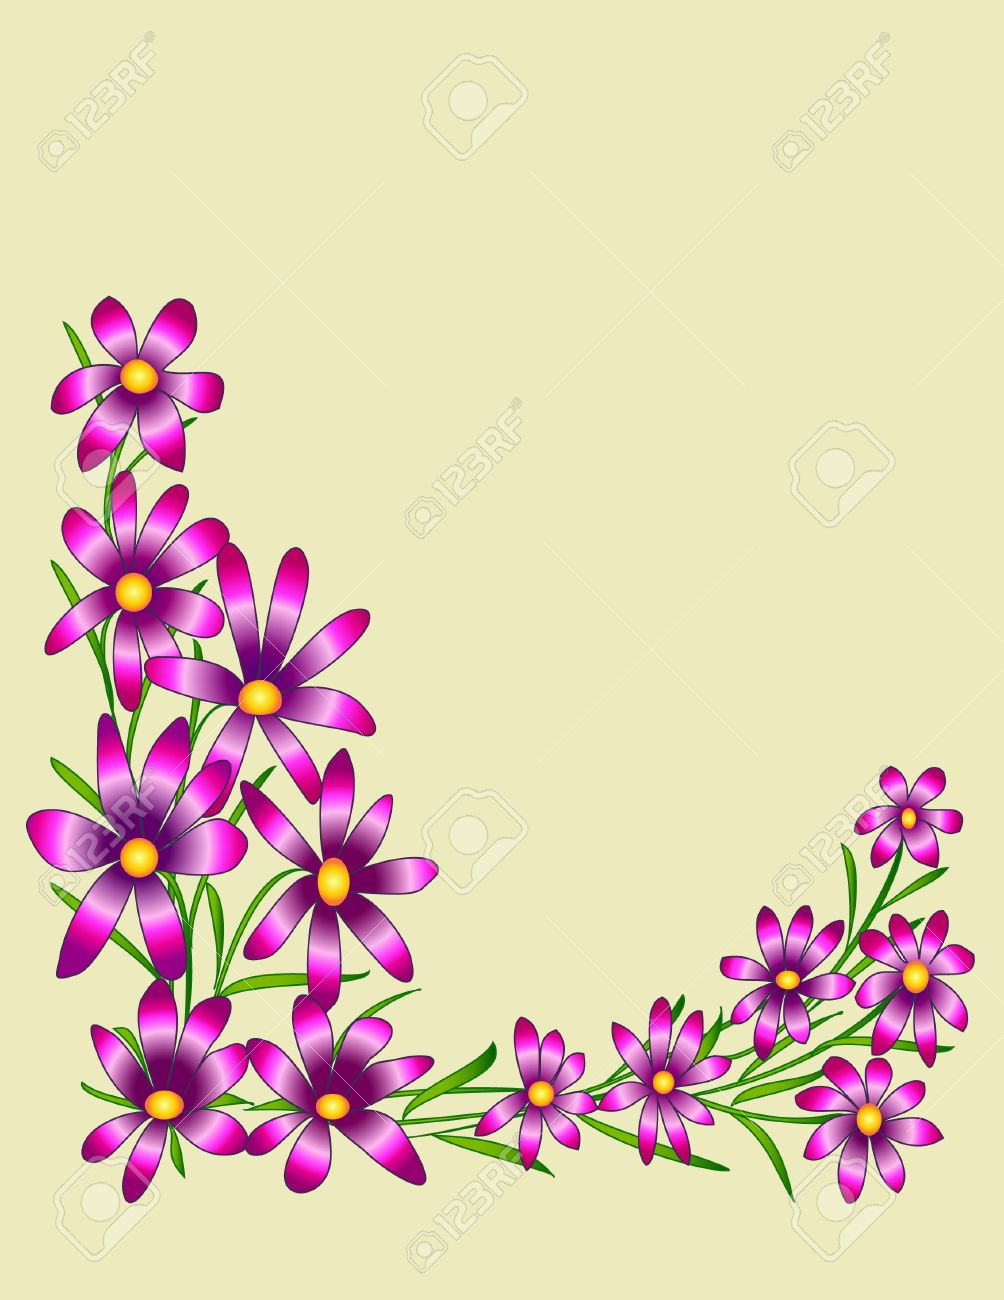 Interior Beautiful Designs floral designs on a beautiful background royalty free cliparts stock vector 9993588